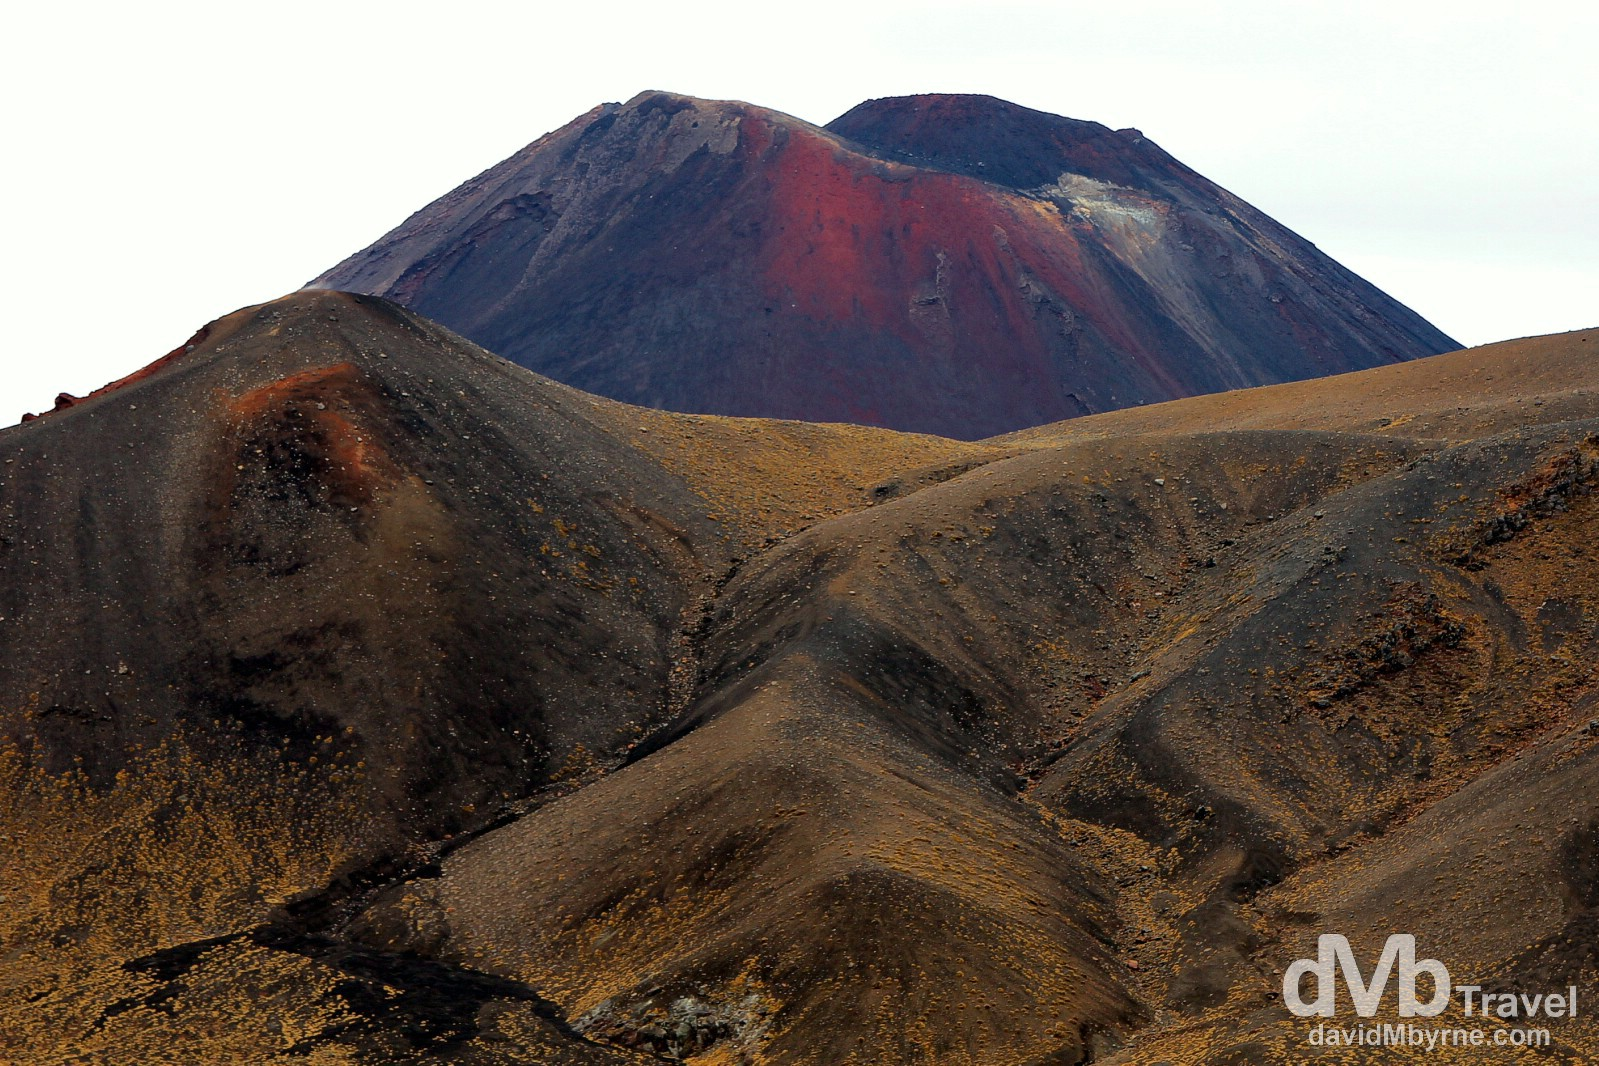 Volcanic topography. Tongariro National Park, North Island, New Zealand. May 9th 2012.